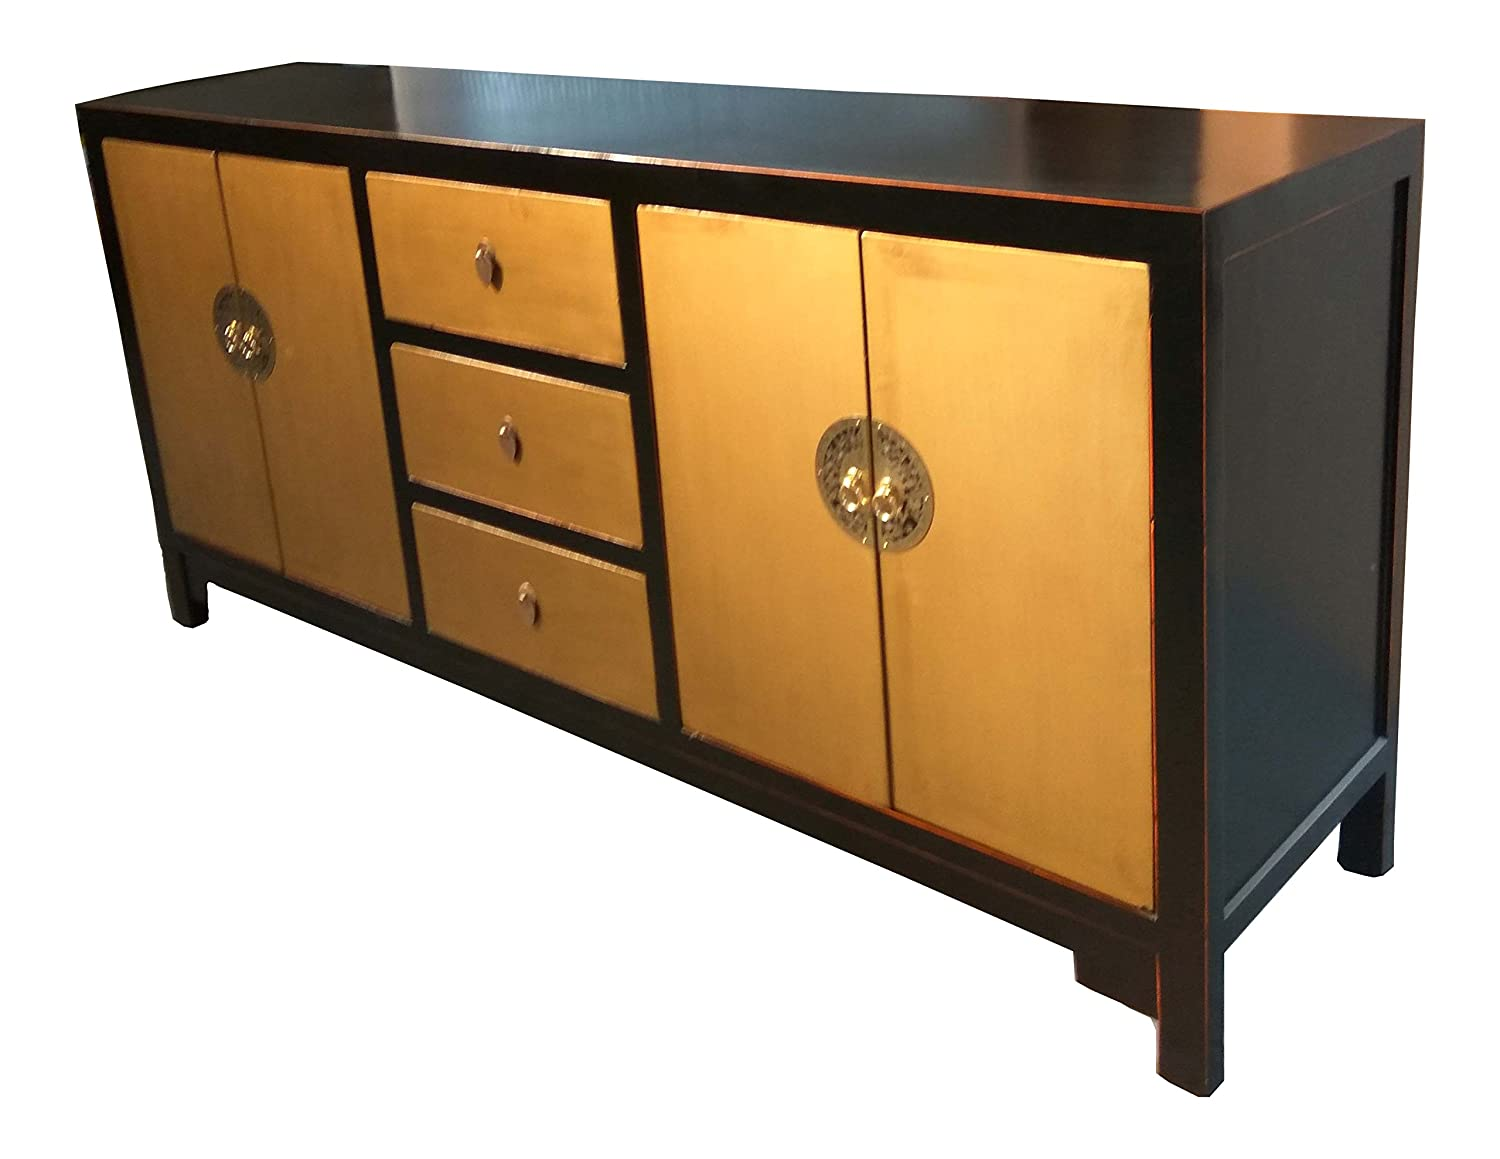 opium outlet tv kommode sideboard aus china in goldoptik. Black Bedroom Furniture Sets. Home Design Ideas